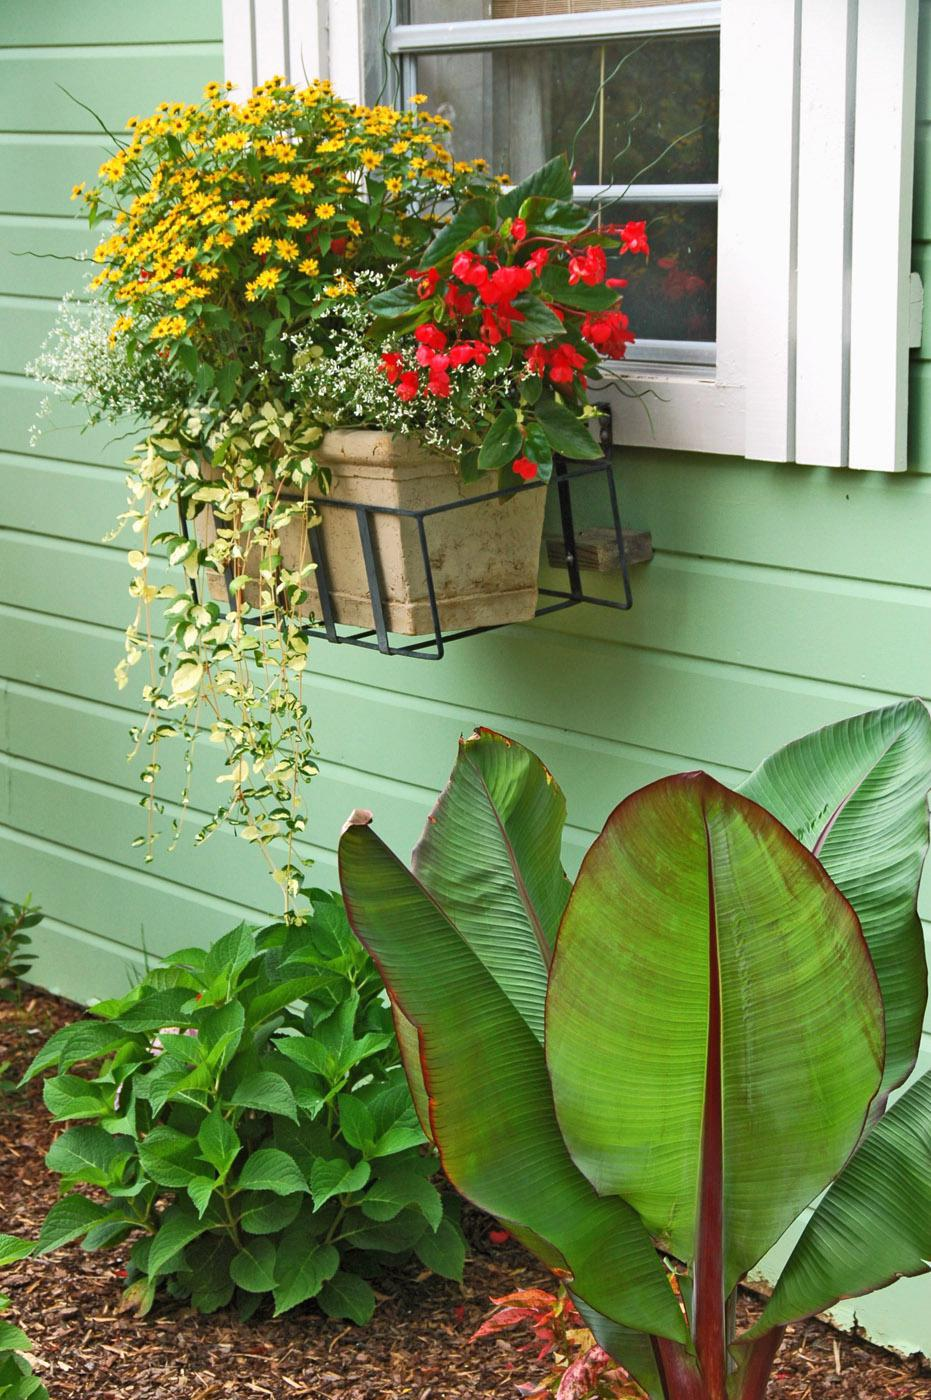 Allow Wojo's Gem vinca to hang down from baskets, creating a great vertical element. This planting uses Wojo's Gem with Dragon Wing Red begonia, Melampodium and Diamond Frost euphorbia for a dazzling combination. (Photo by Norman Winter)